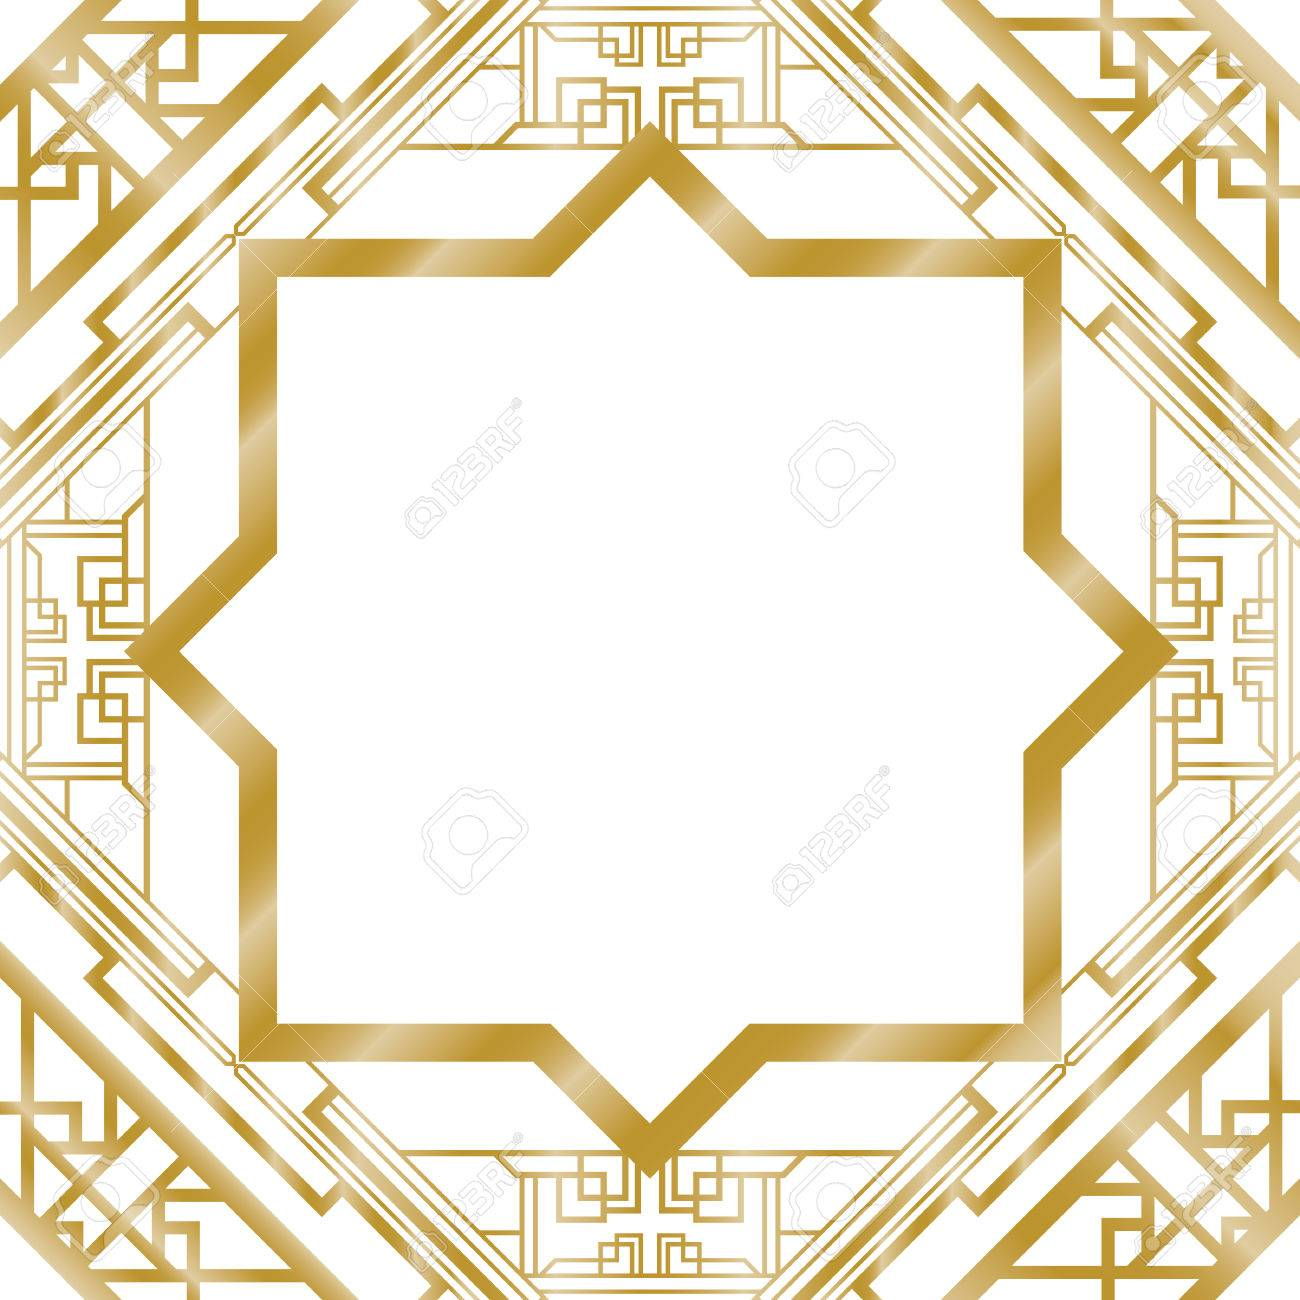 art deco abstract background - 39586608